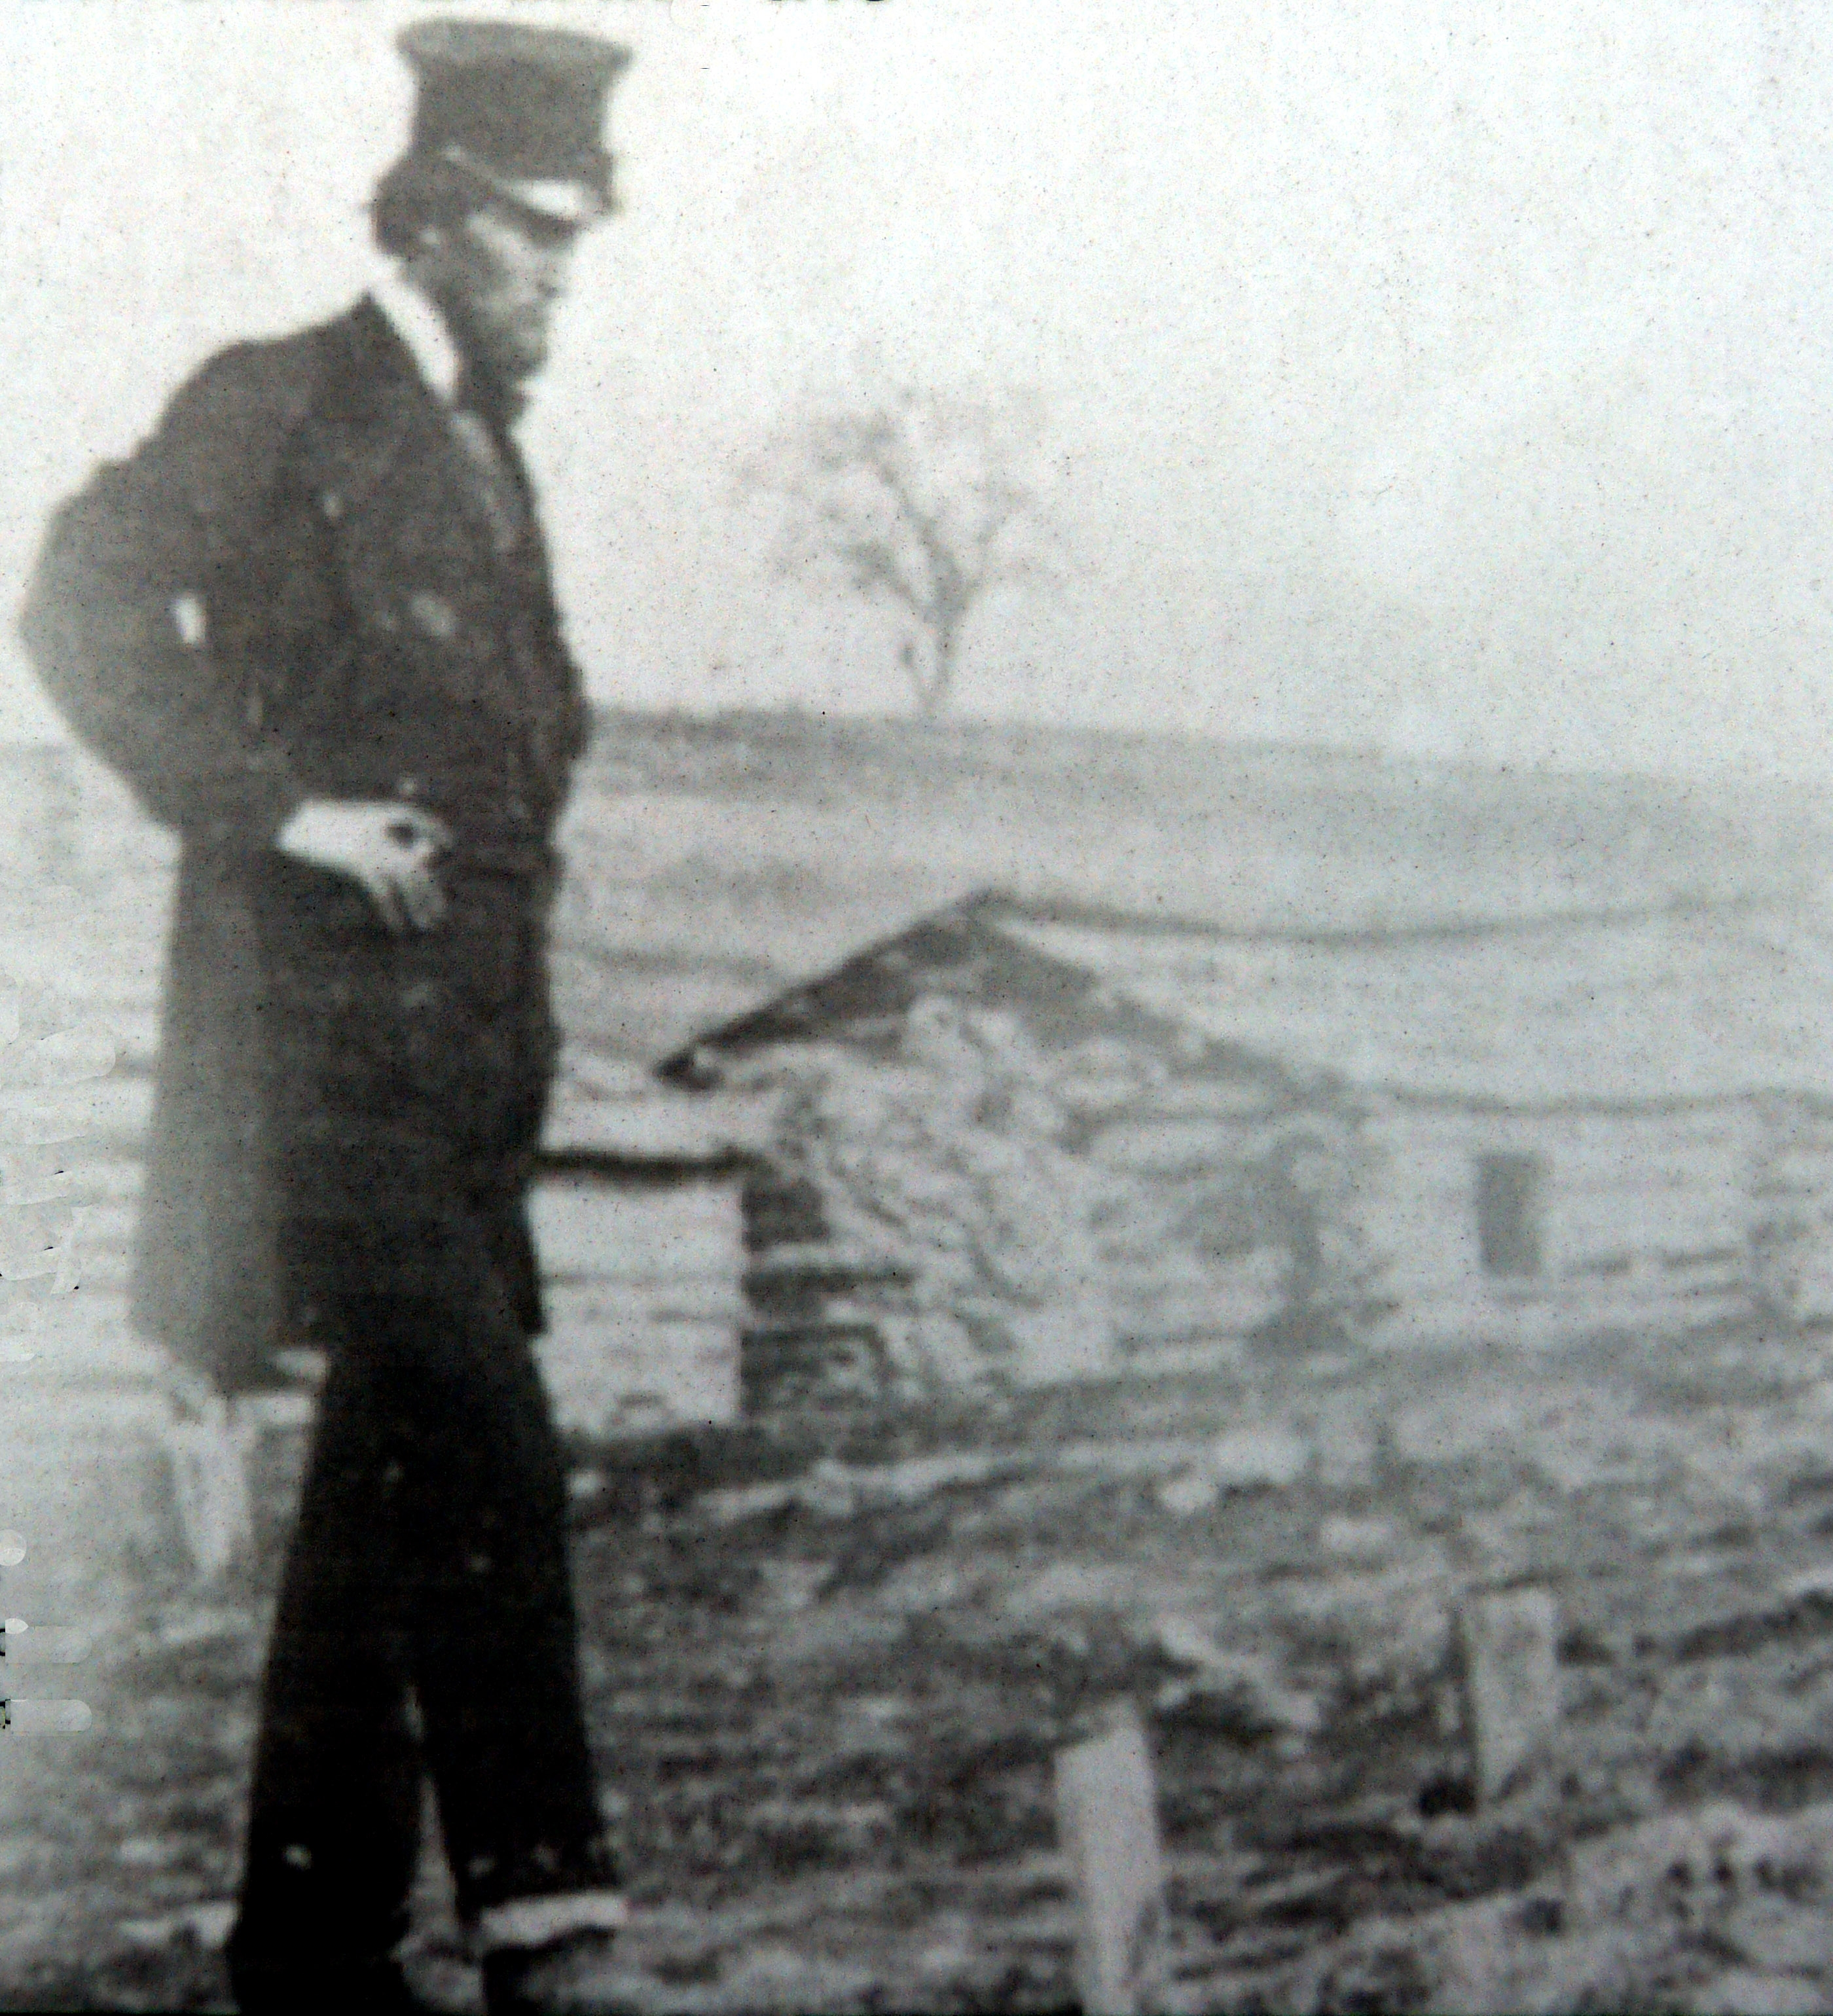 Abraham Lincoln views soldier graves at Bull Run, 1862